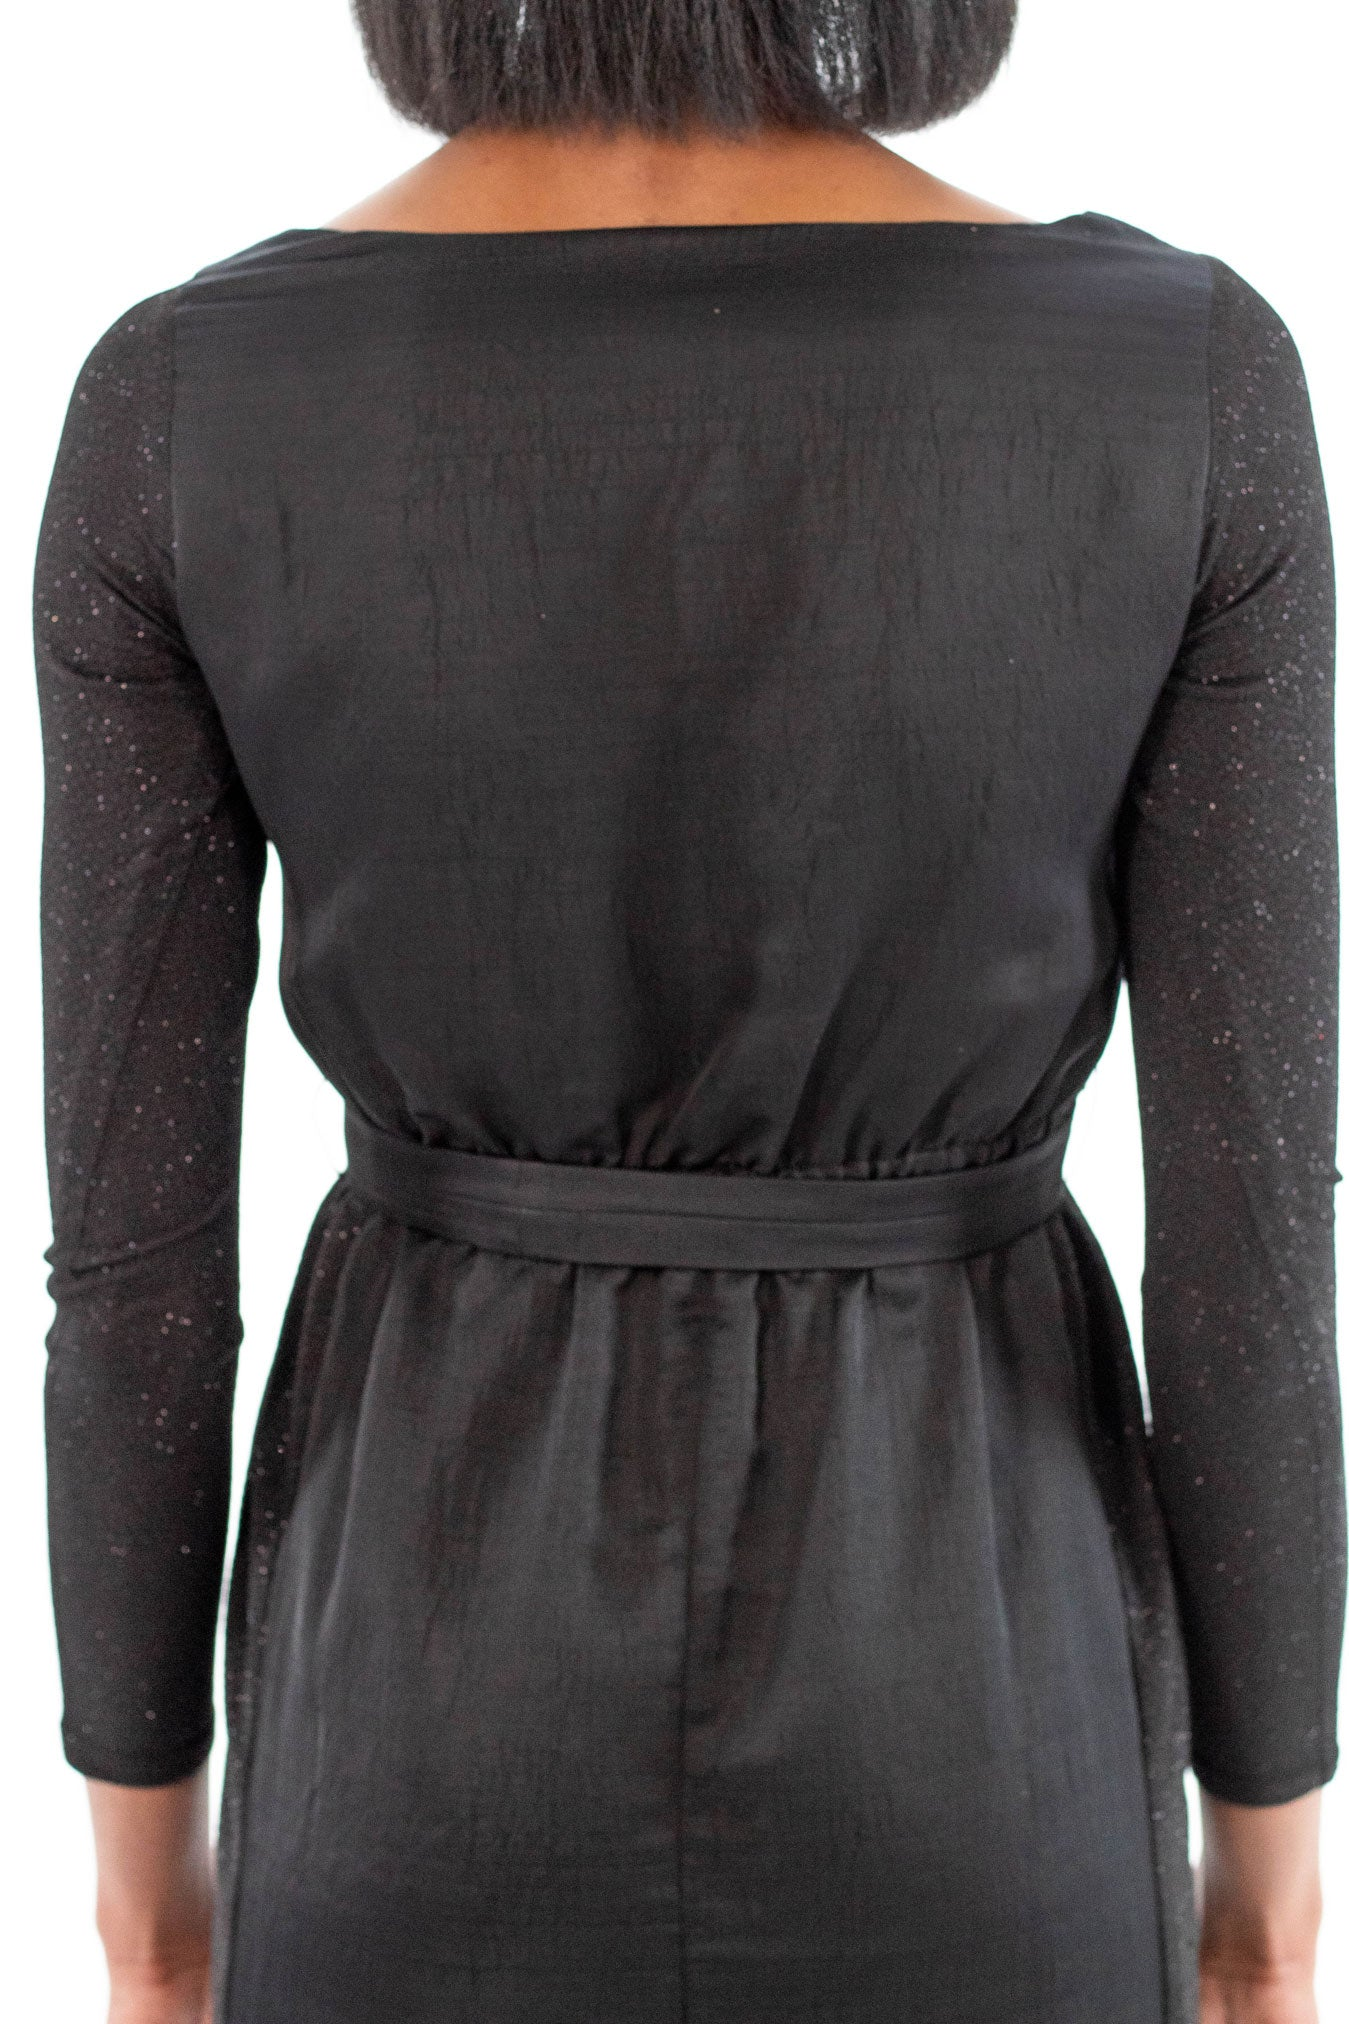 Black Dress with Pockets and Sleeves